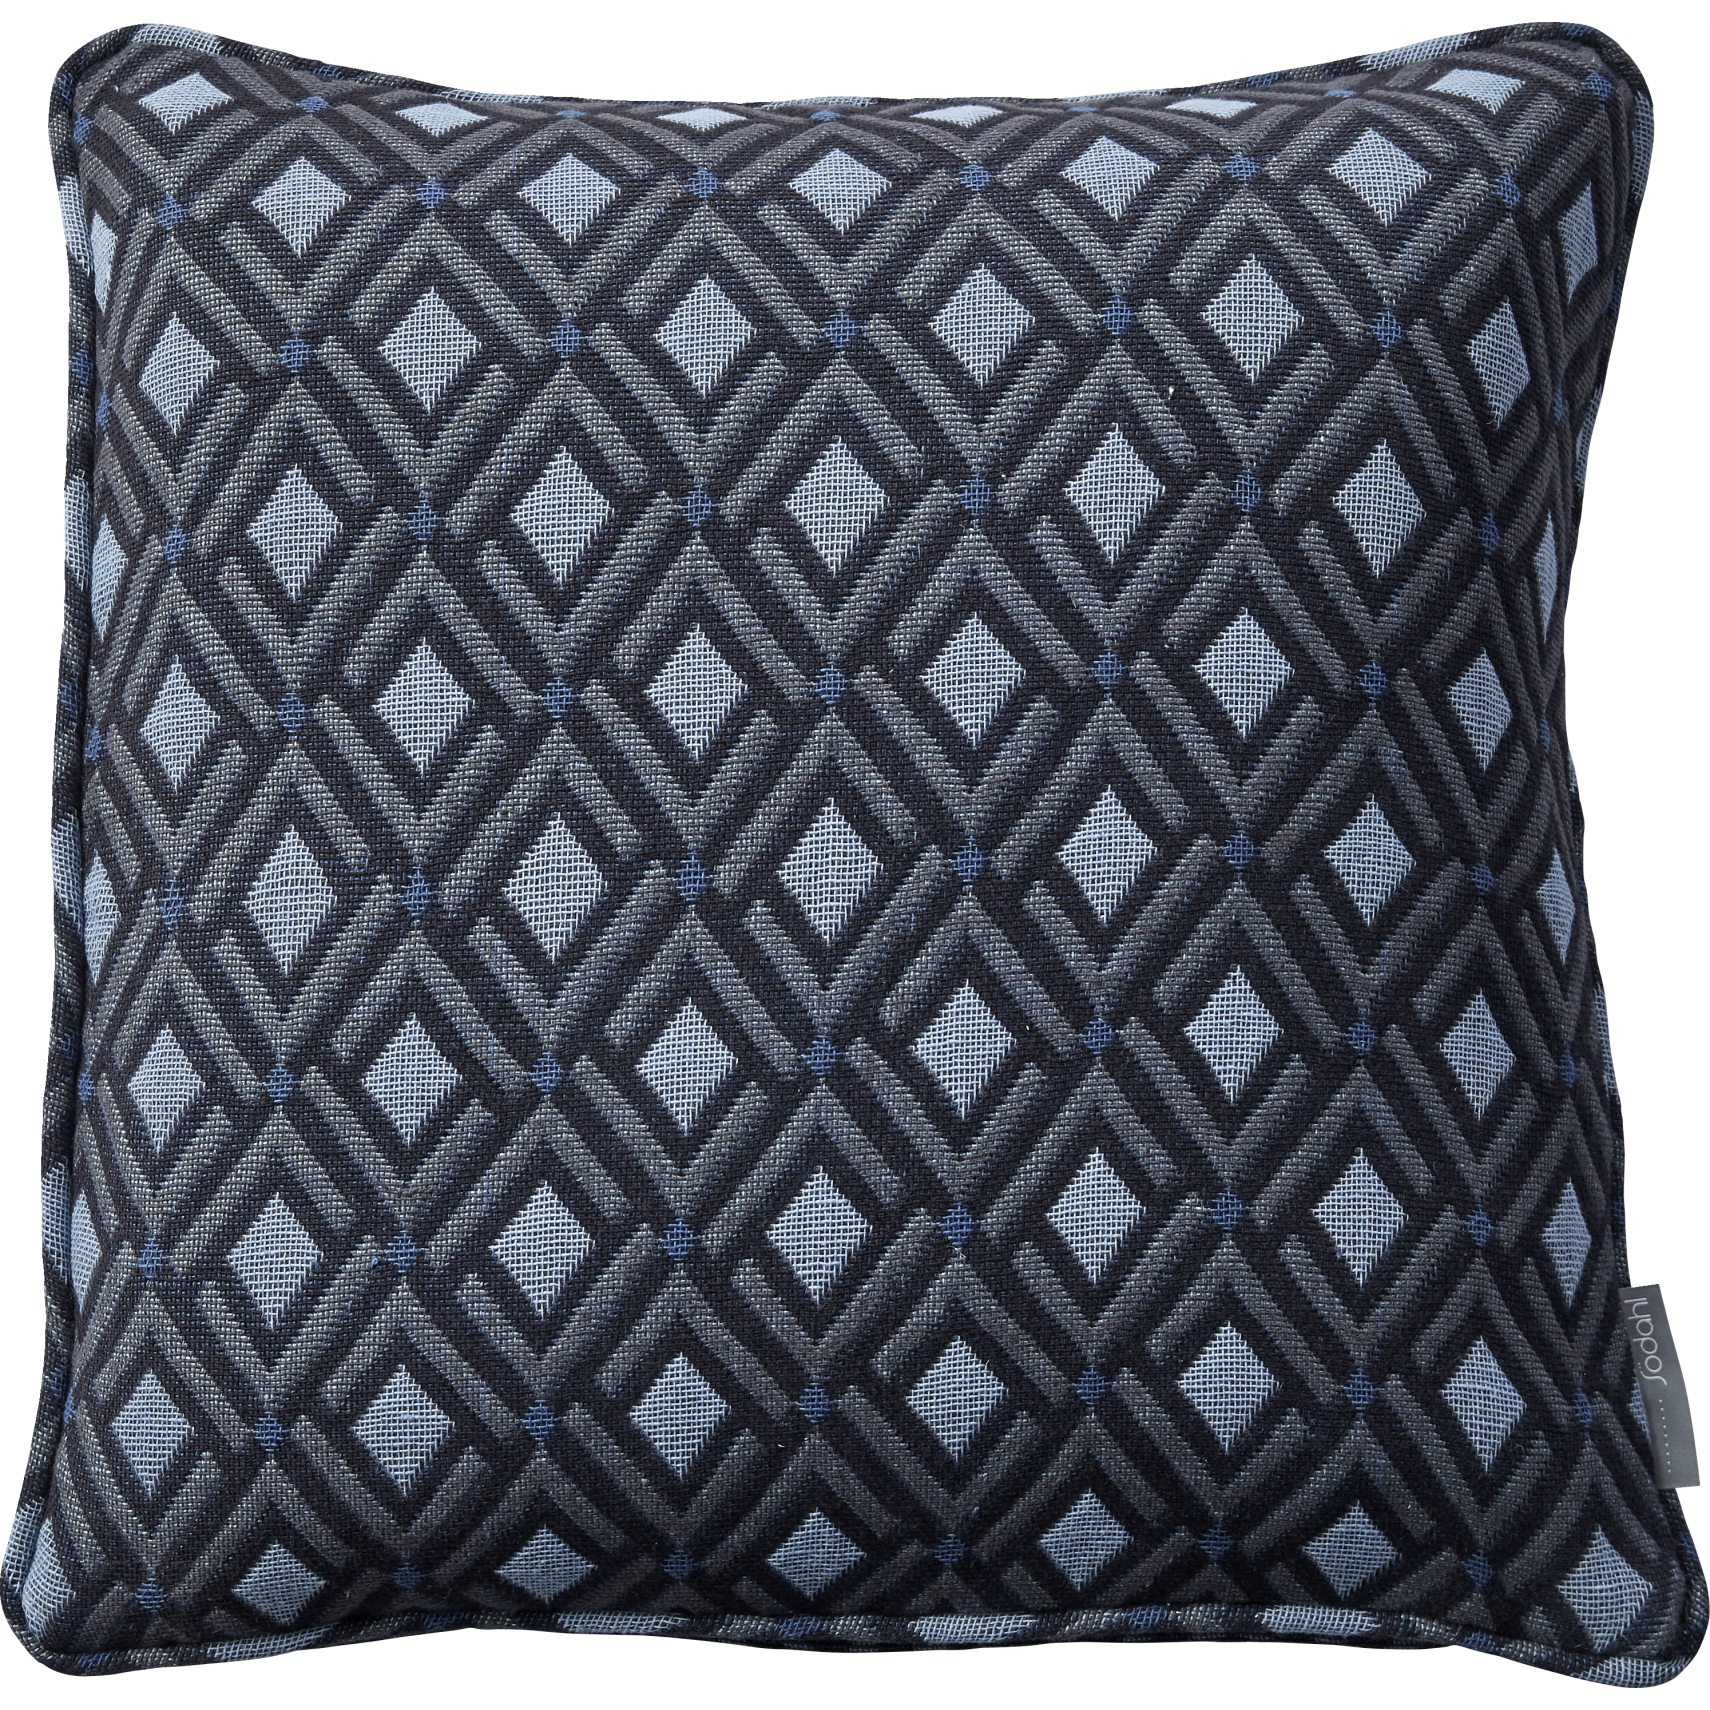 Södahl Checkered Pude 50 x 50 cm - Ashley blue/bering sea bomuld og geometrisk mønster